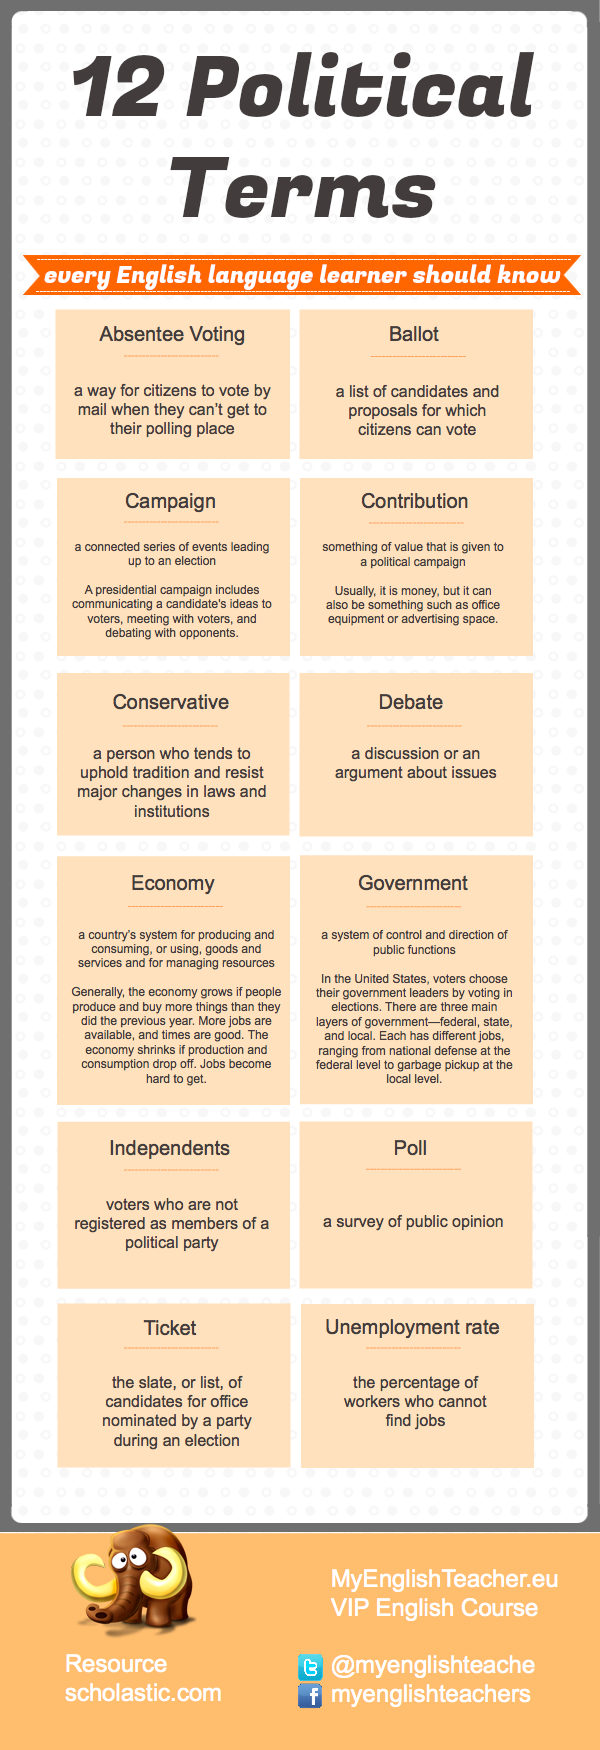 Top 12 Political Terms To Know